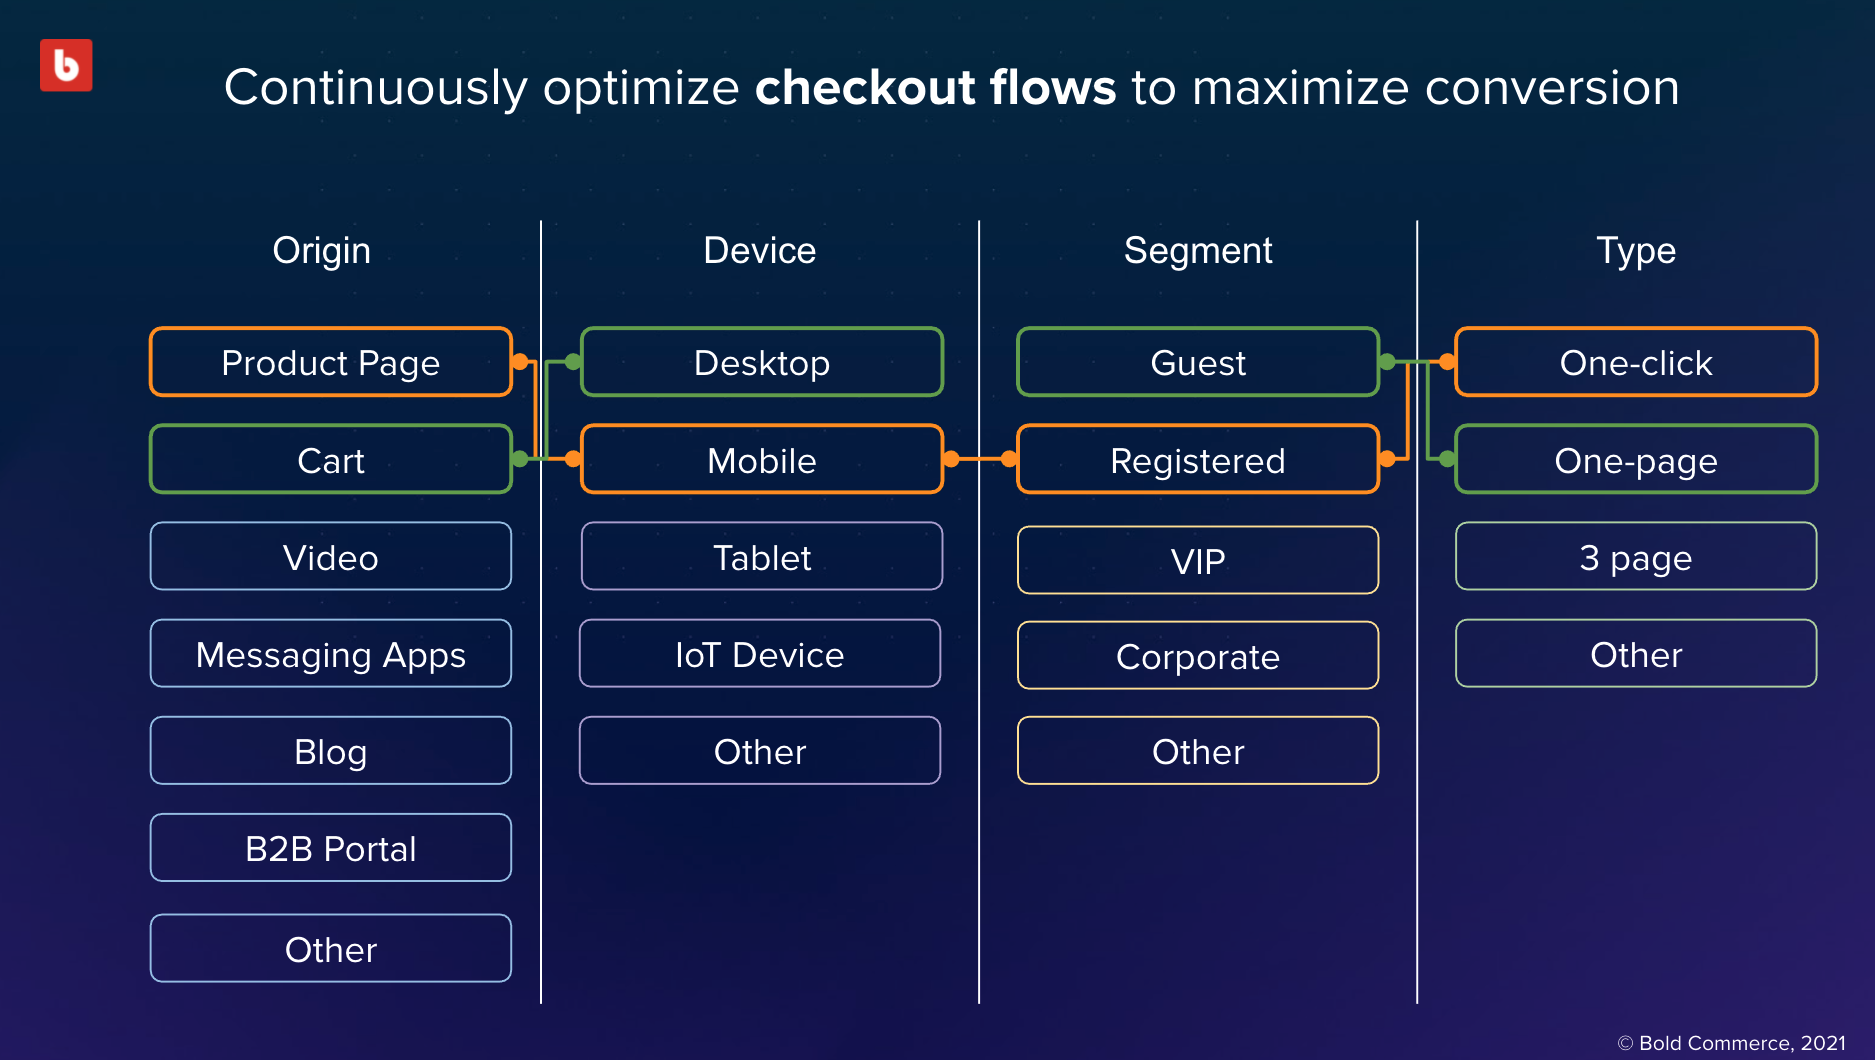 Checkout flow variations